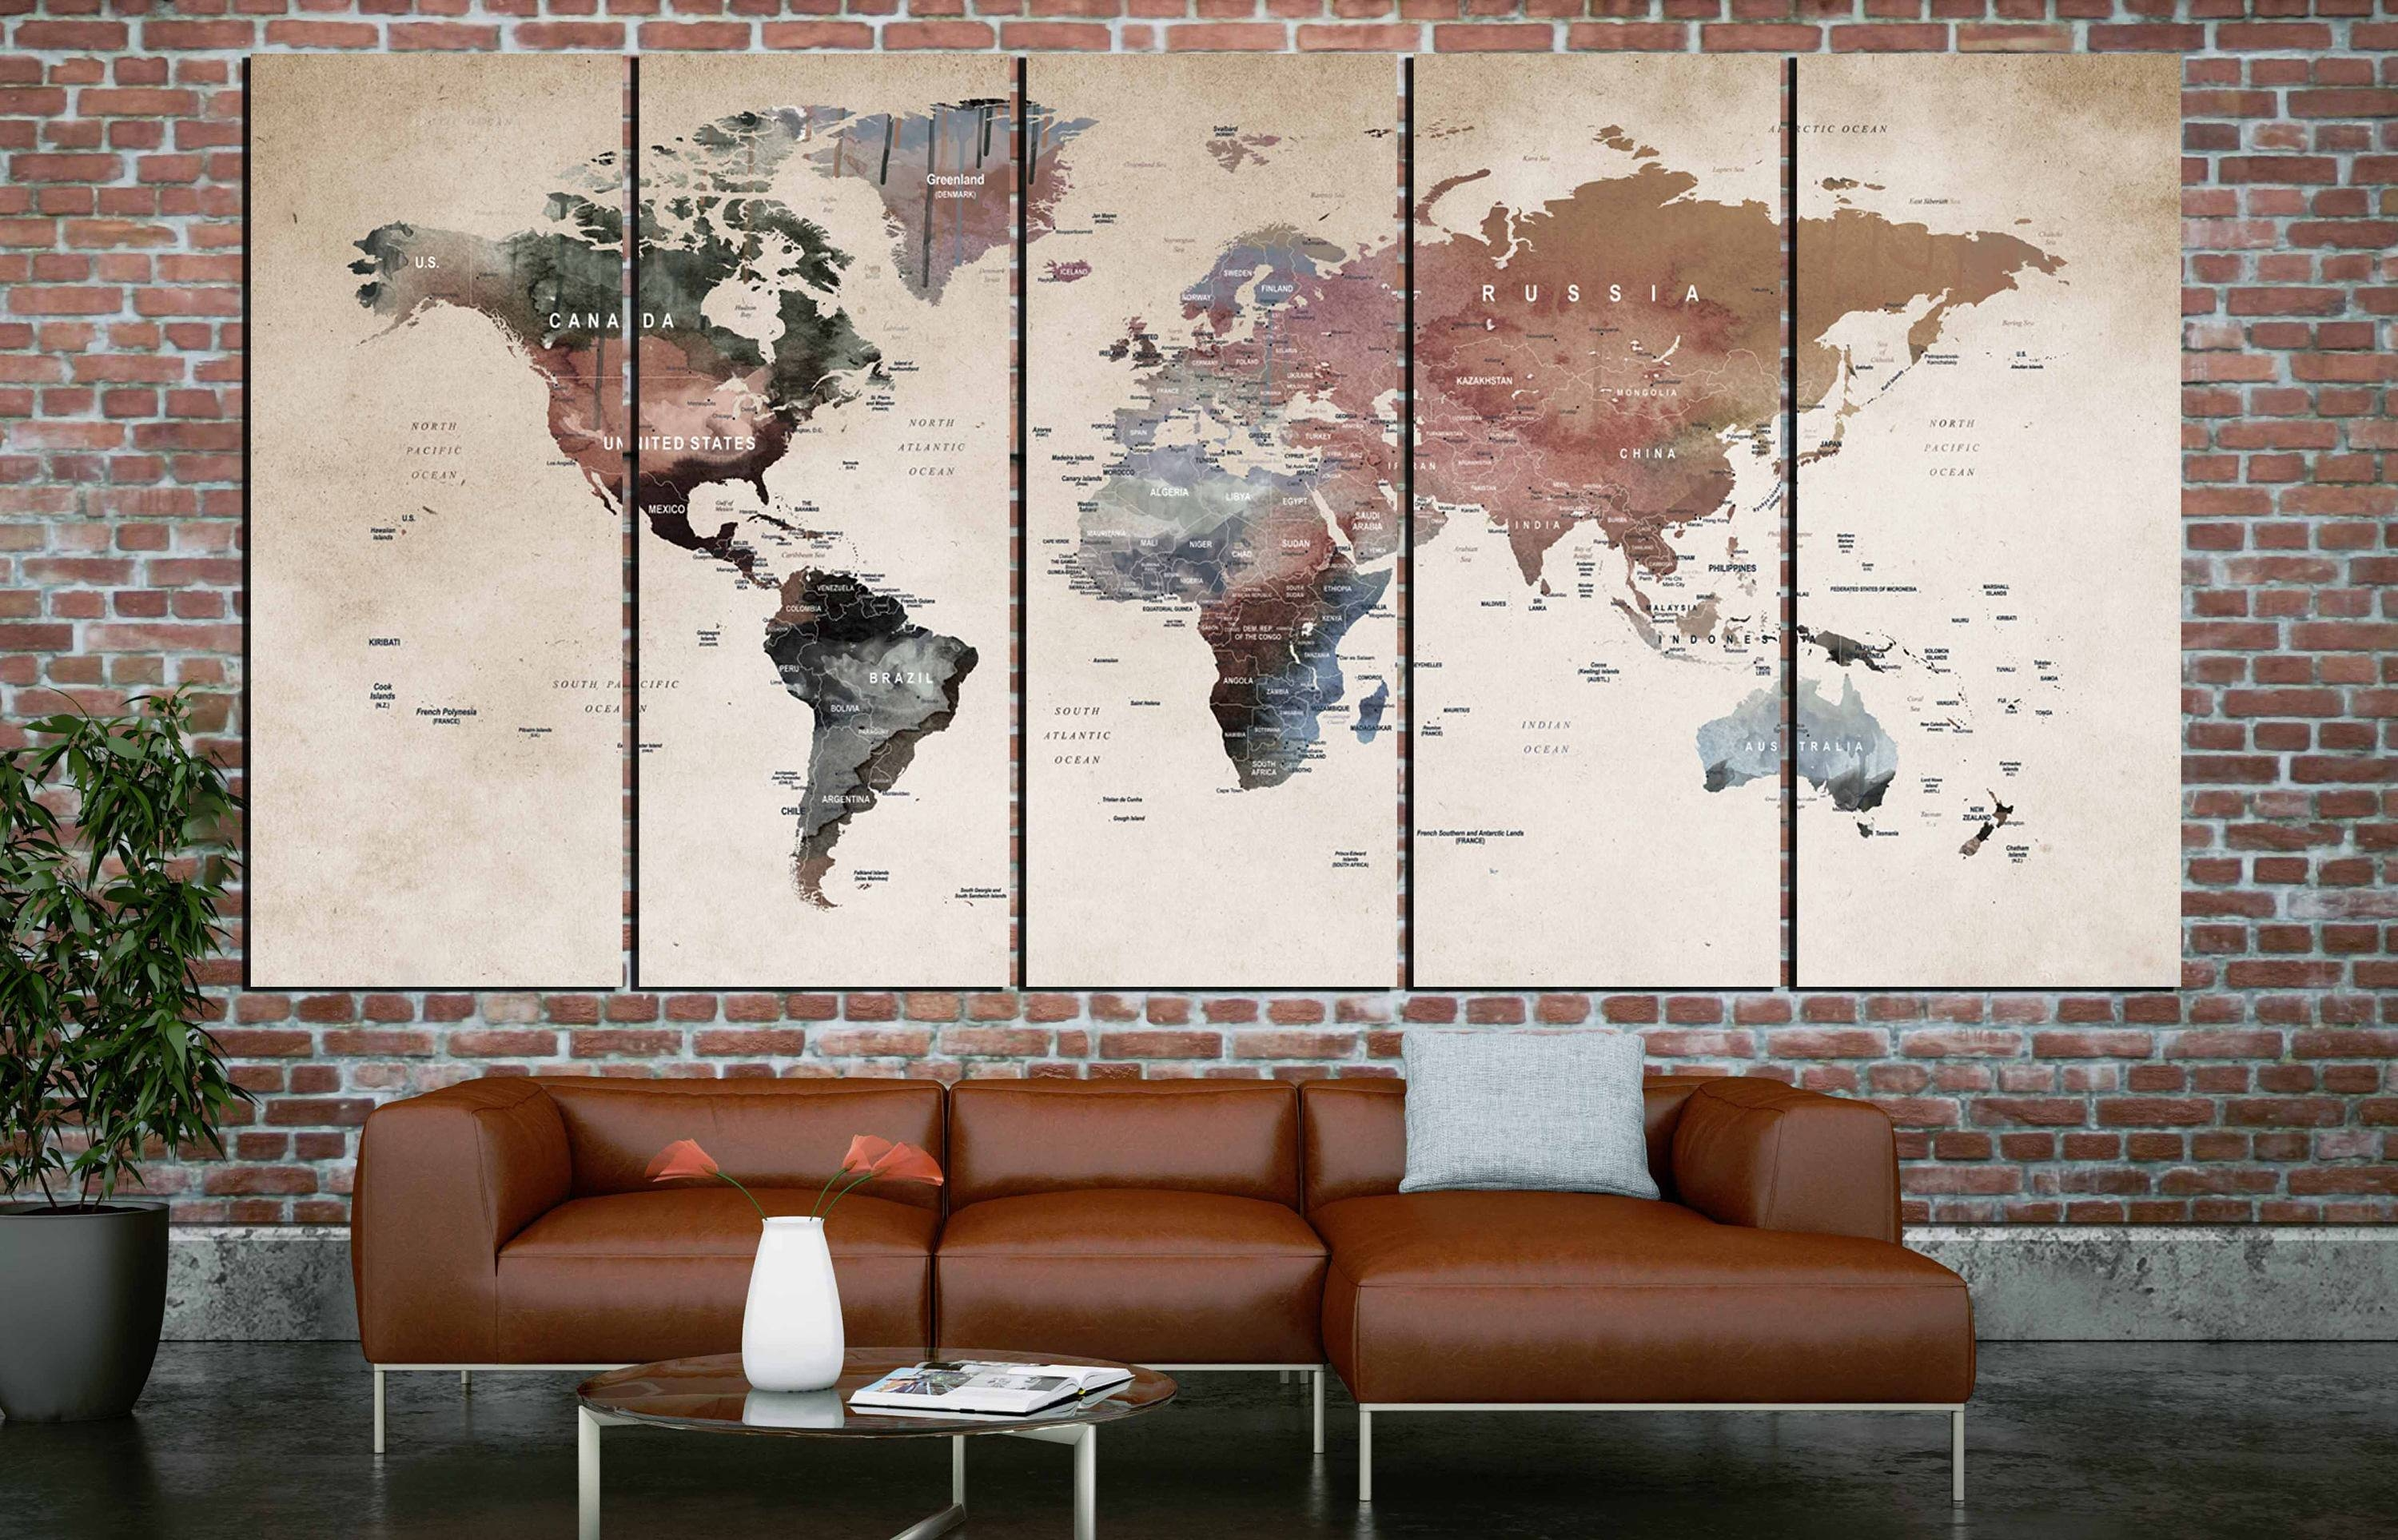 20 best ideas of vintage world map wall art world map wall artworld map canvasworld map printlarge world throughout gumiabroncs Gallery